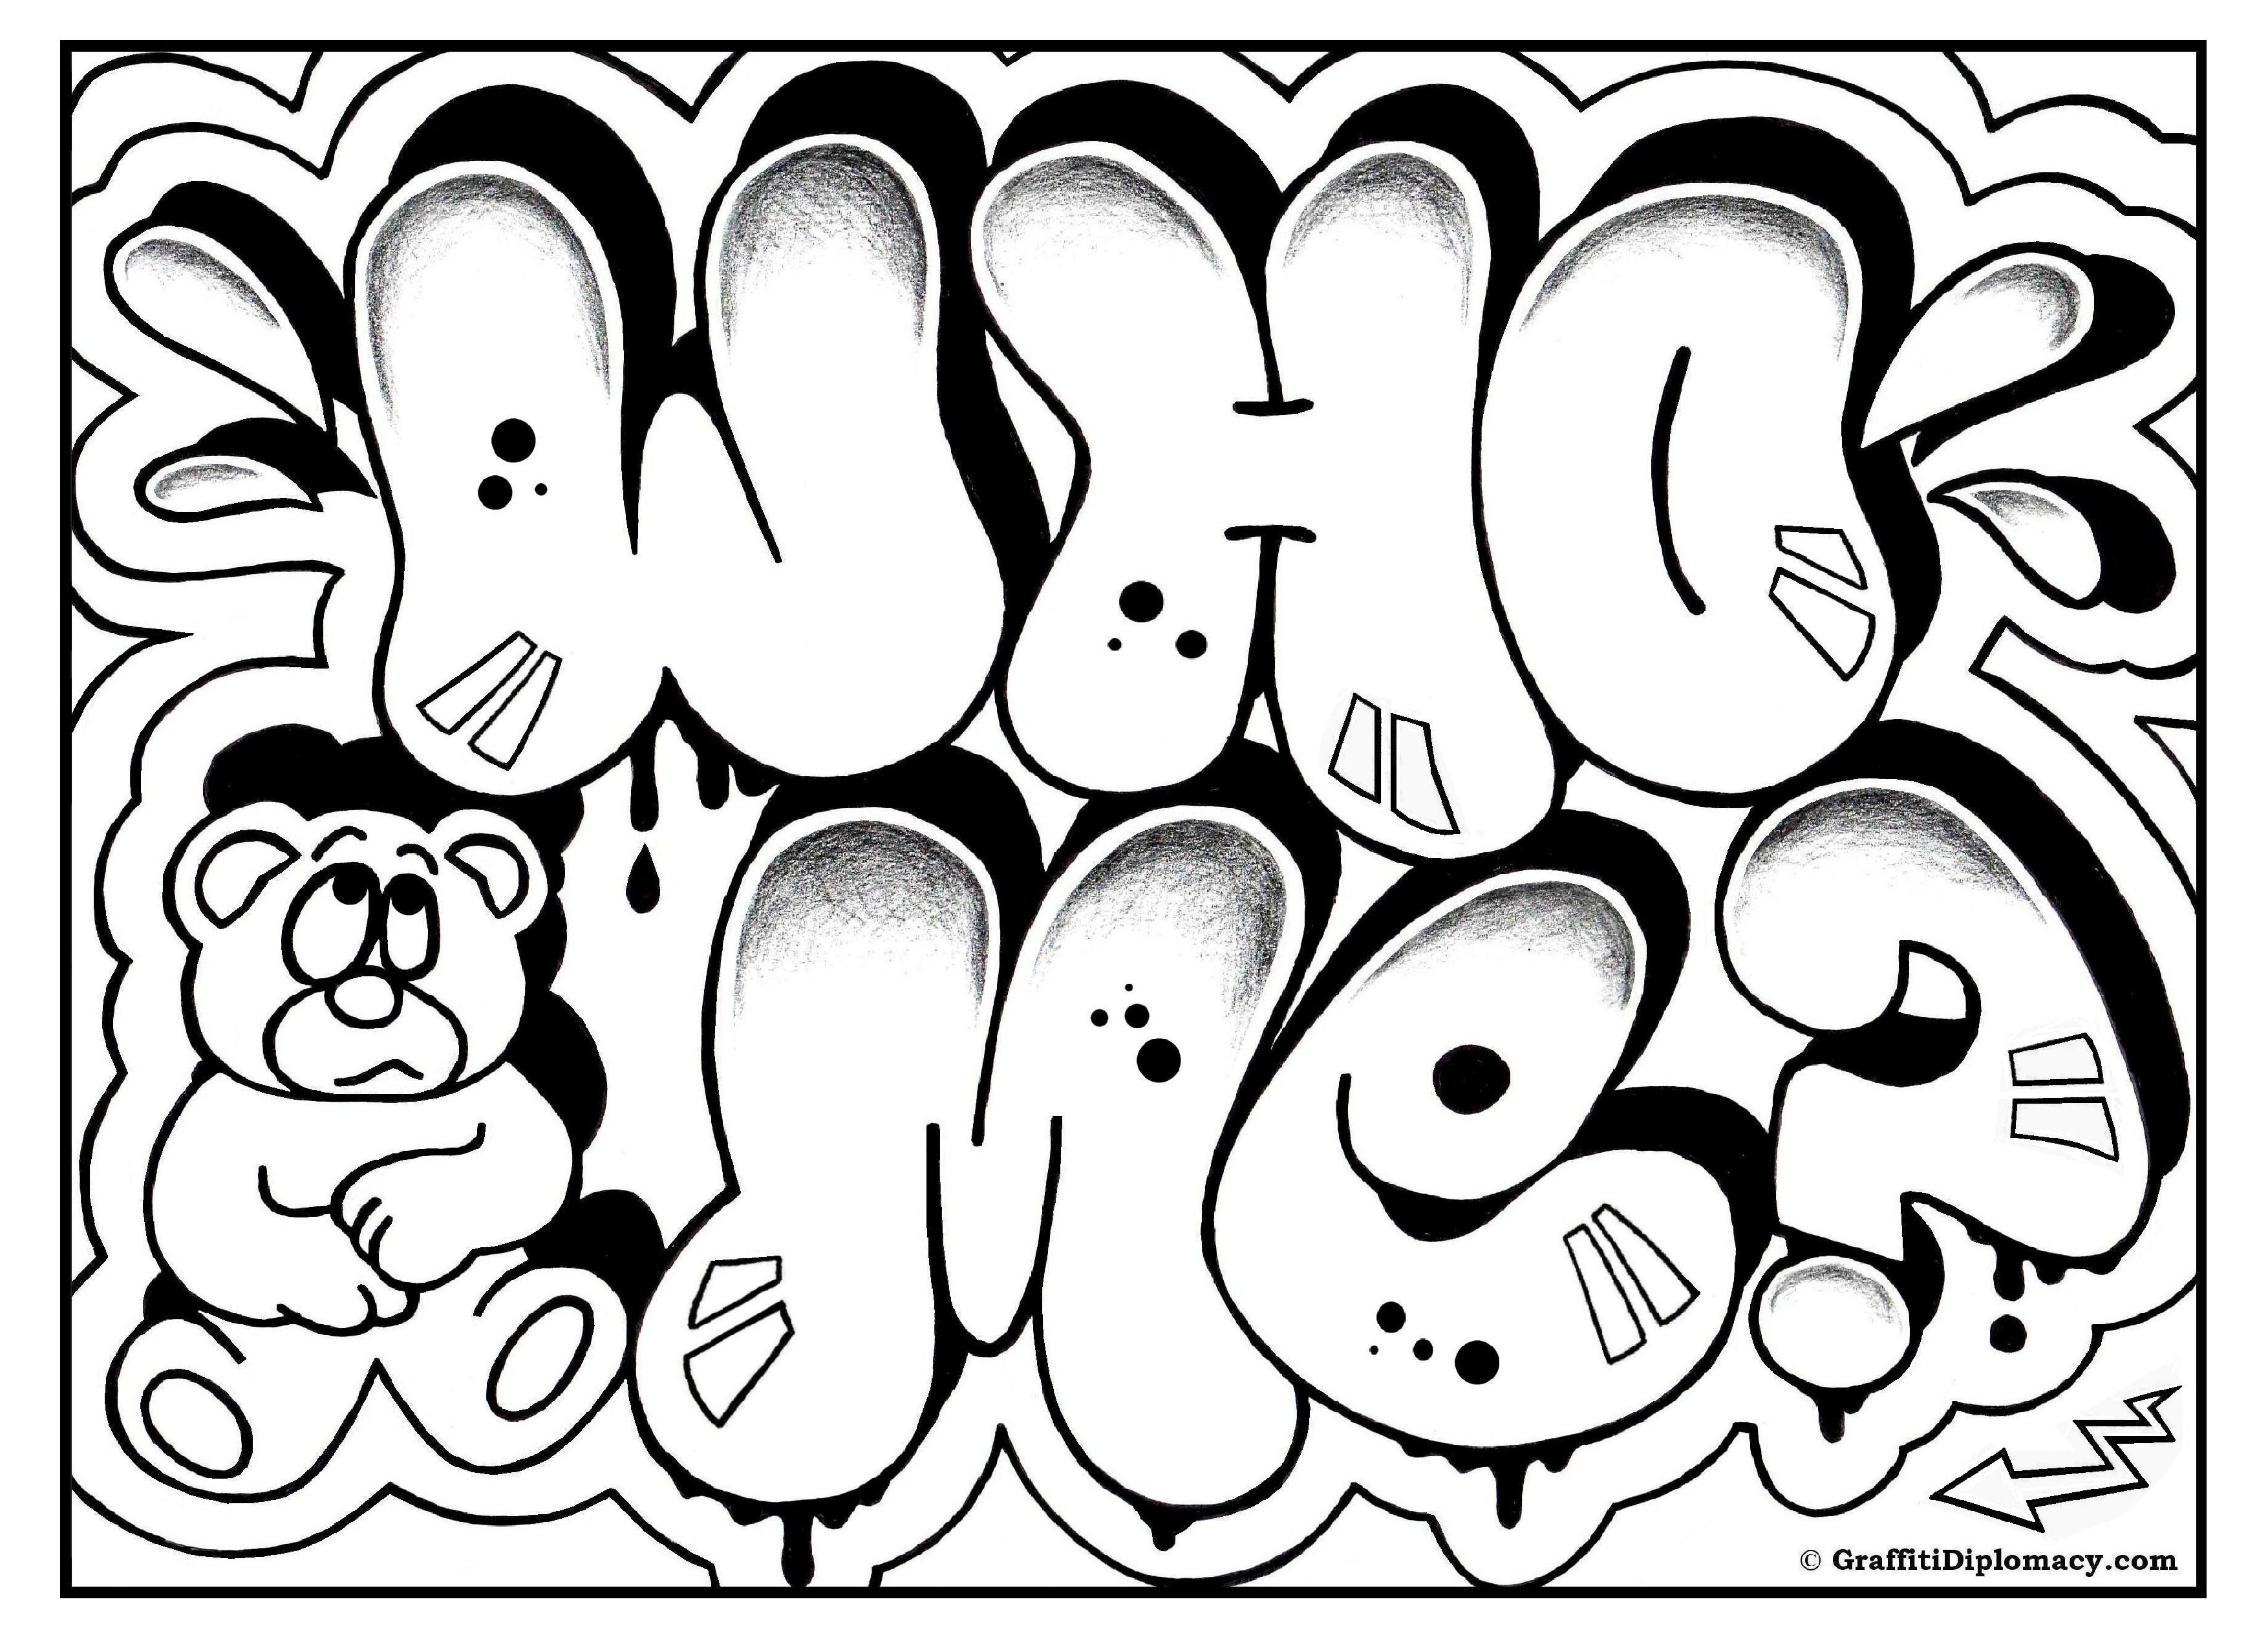 Cool Graffiti Coloring Pages - Coloring Home